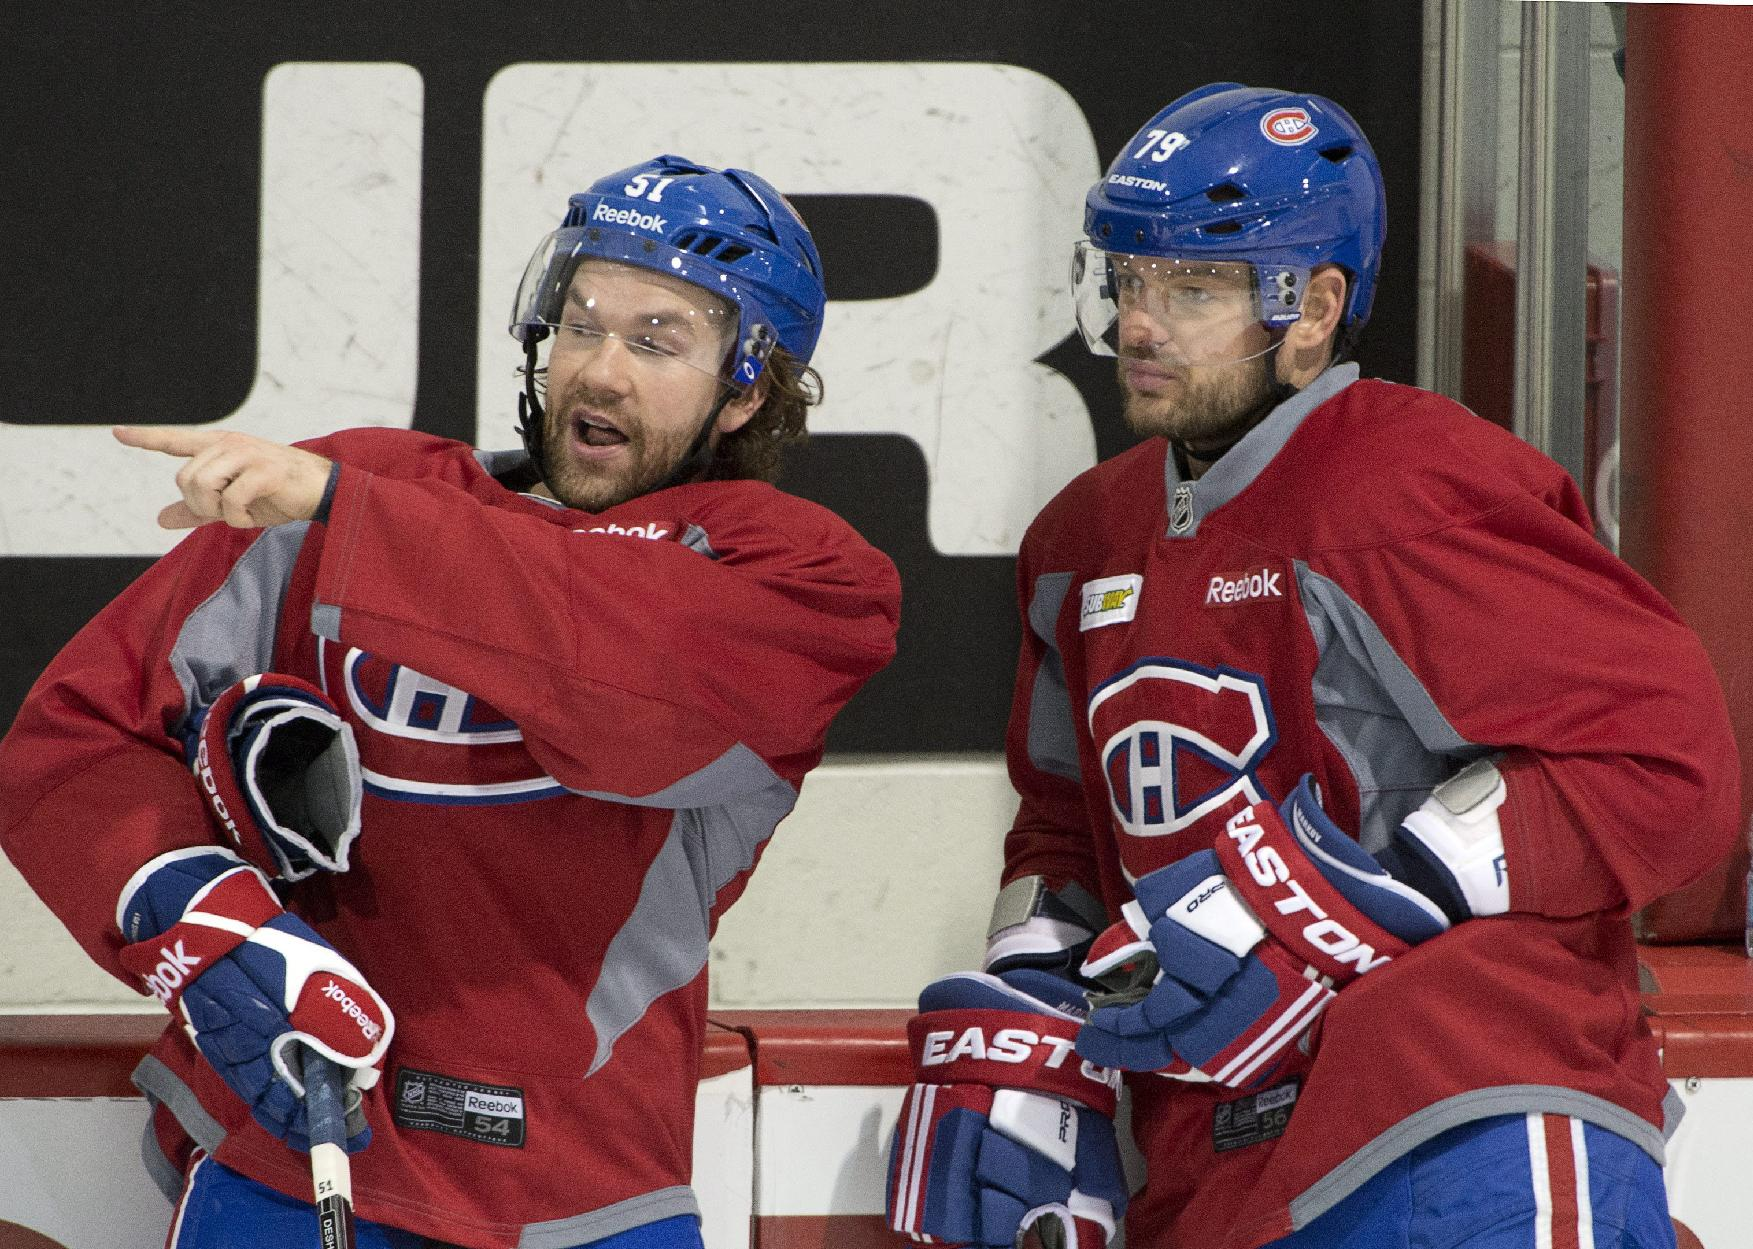 Montreal Canadiens center David Desharnais, left, and defenseman Andrei Markov go over a play during the team's NHL hockey practice Monday, April 28, 2014, in Brossard, Quebec